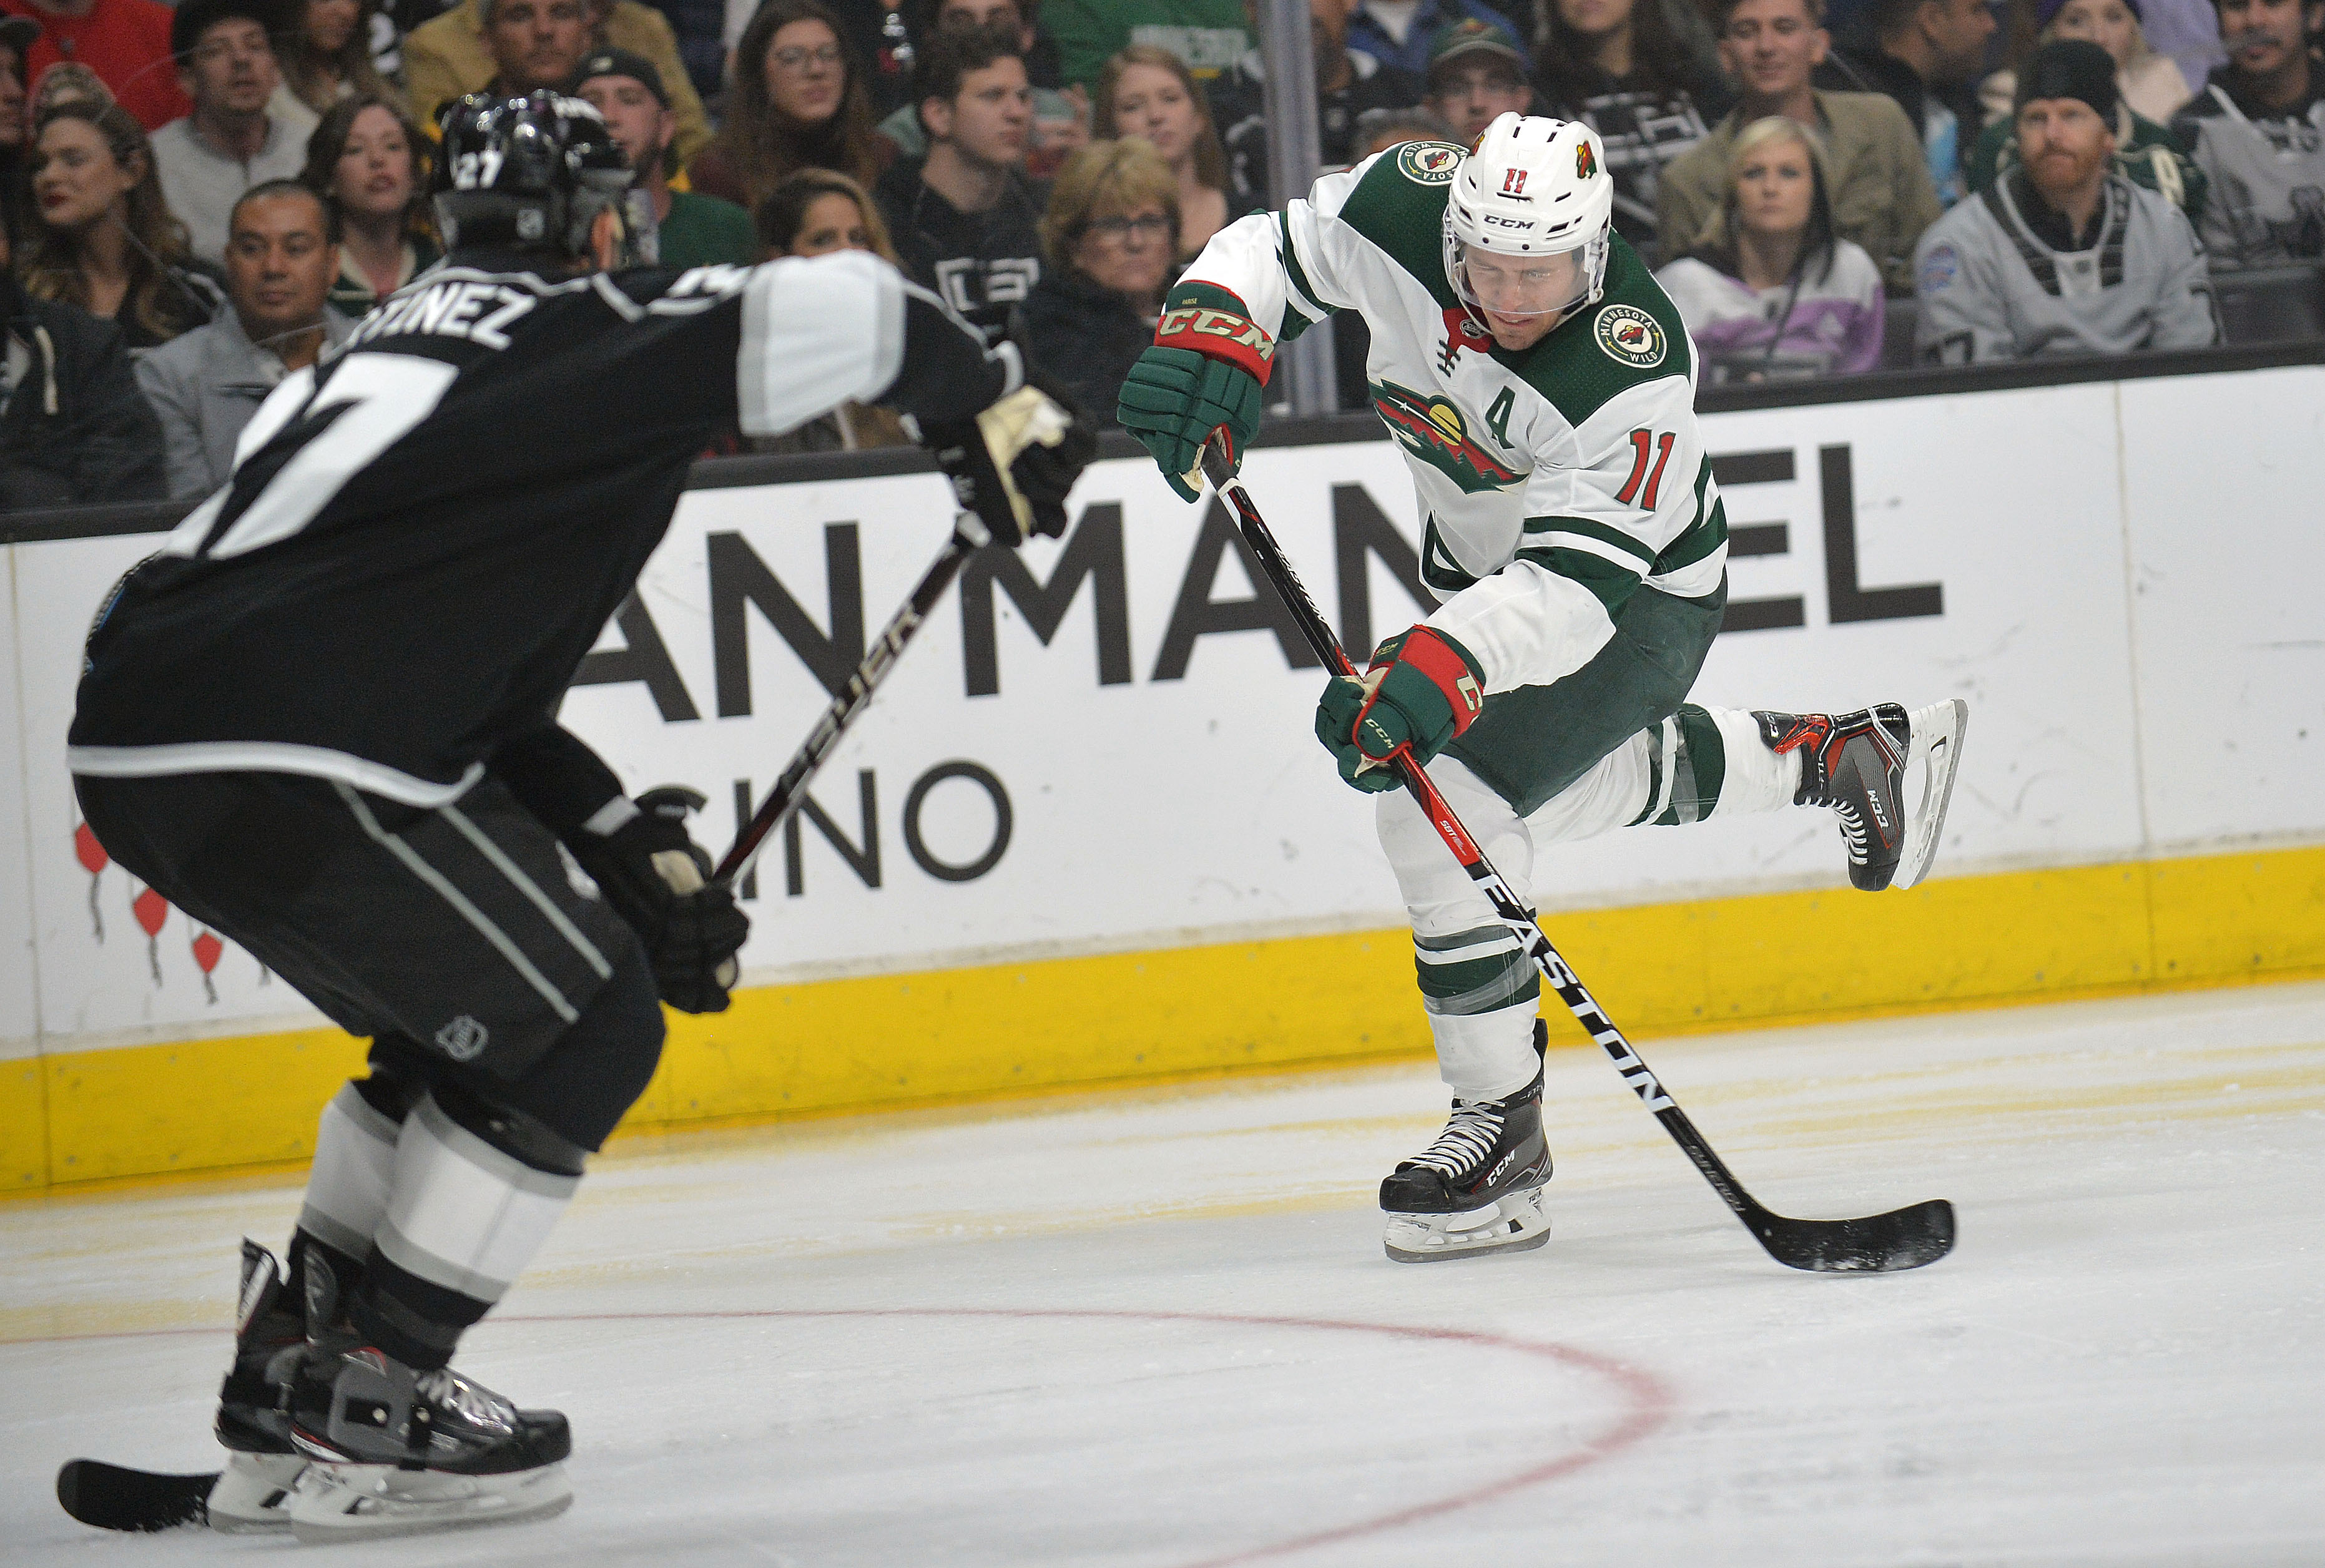 Game Preview: Minnesota Wild vs. Los Angeles Kings 10/25/18 @ 7:00PM CST at Xcel Energy Center